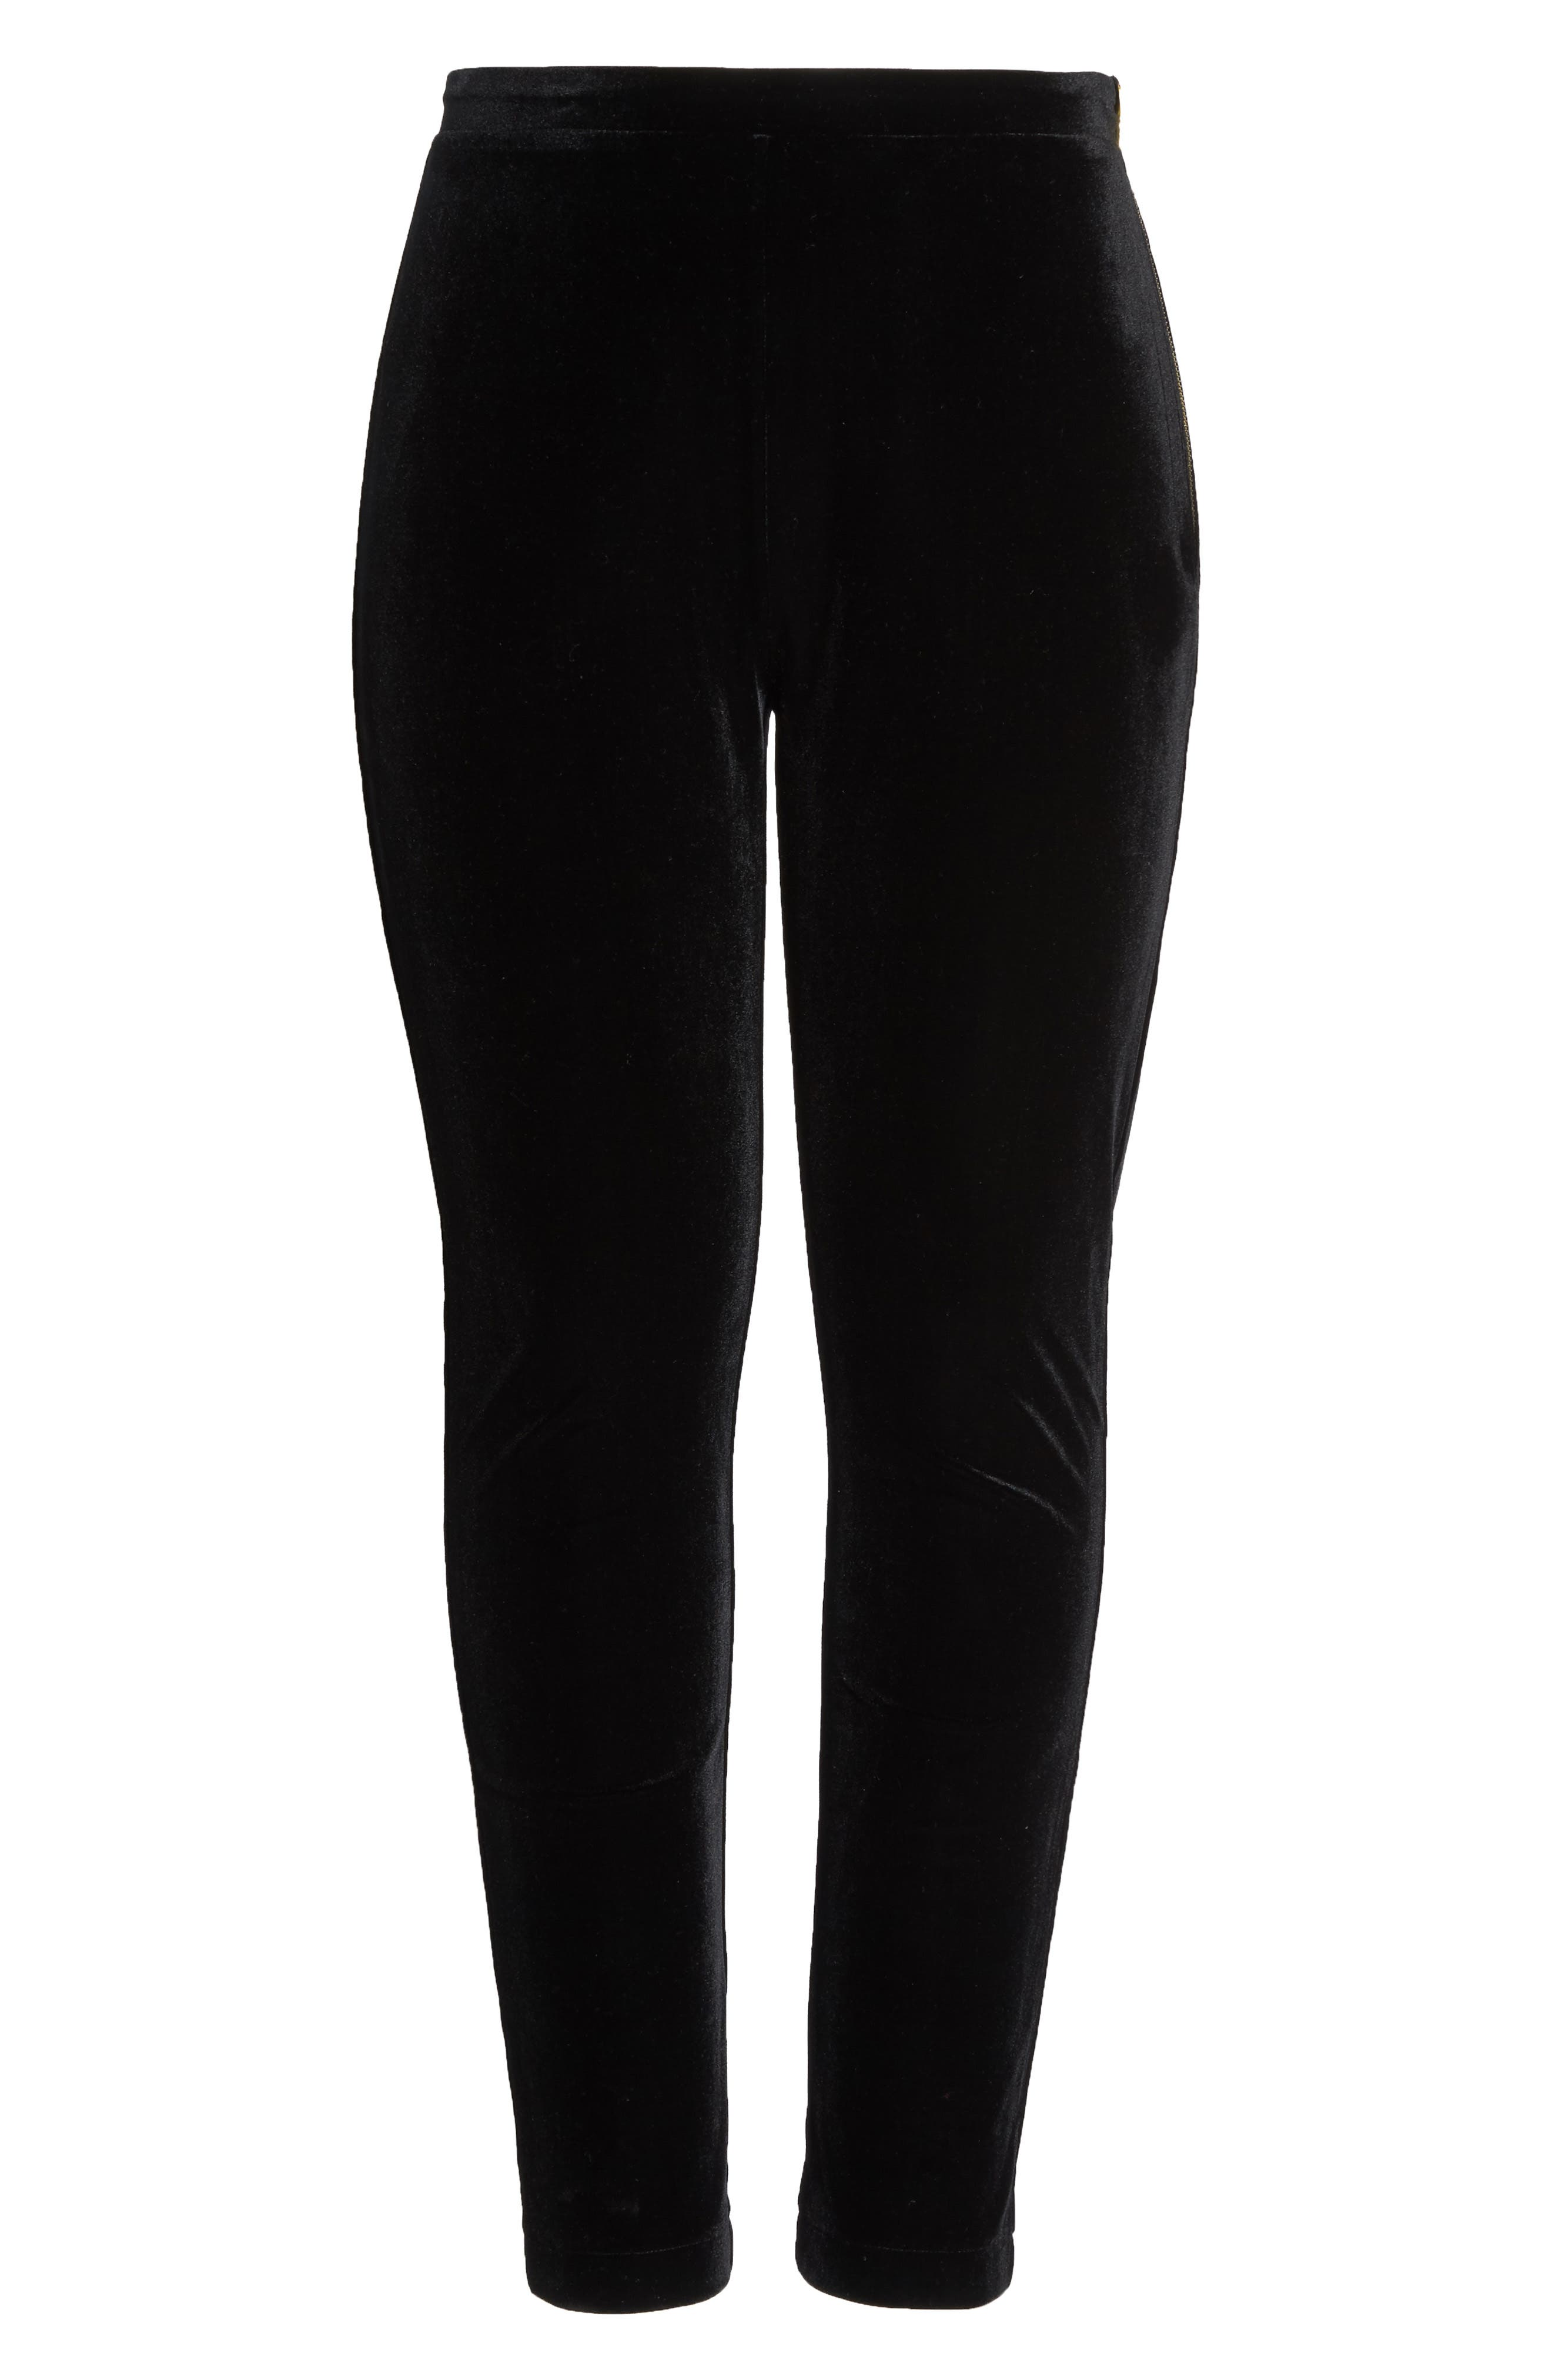 Black Velvet Trousers,                             Alternate thumbnail 6, color,                             001